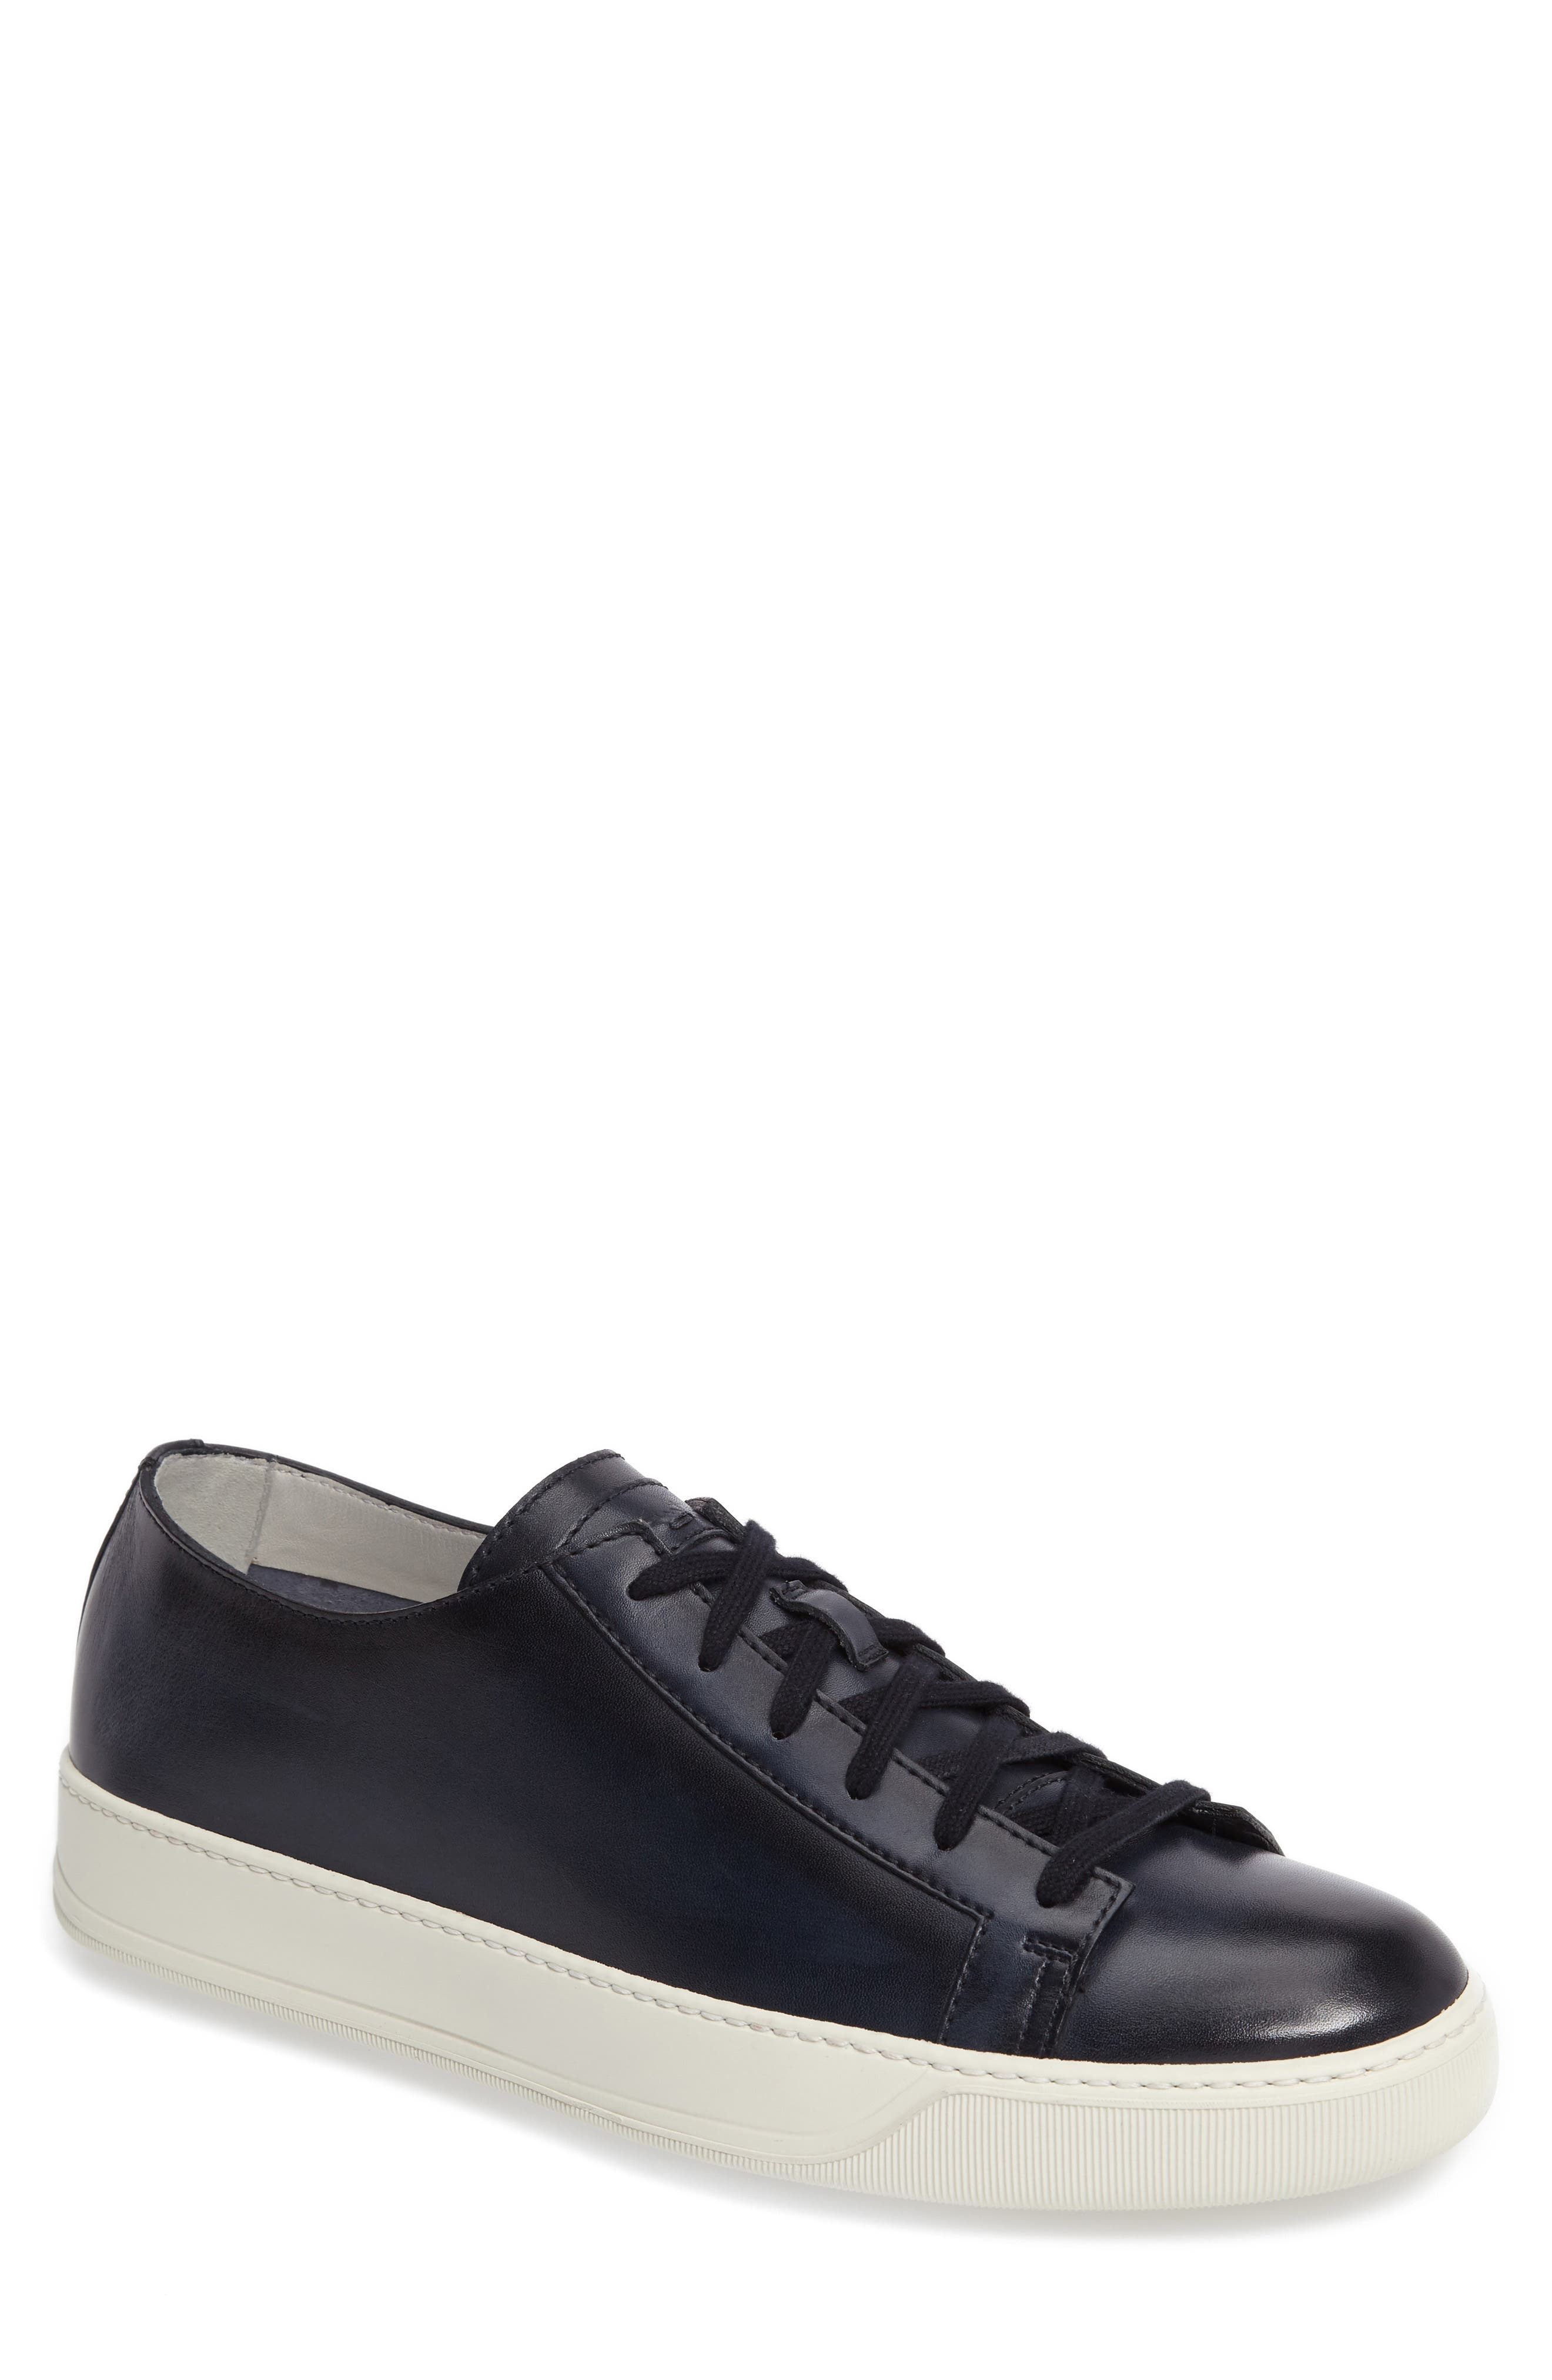 Cleanic Sneaker,                             Main thumbnail 4, color,